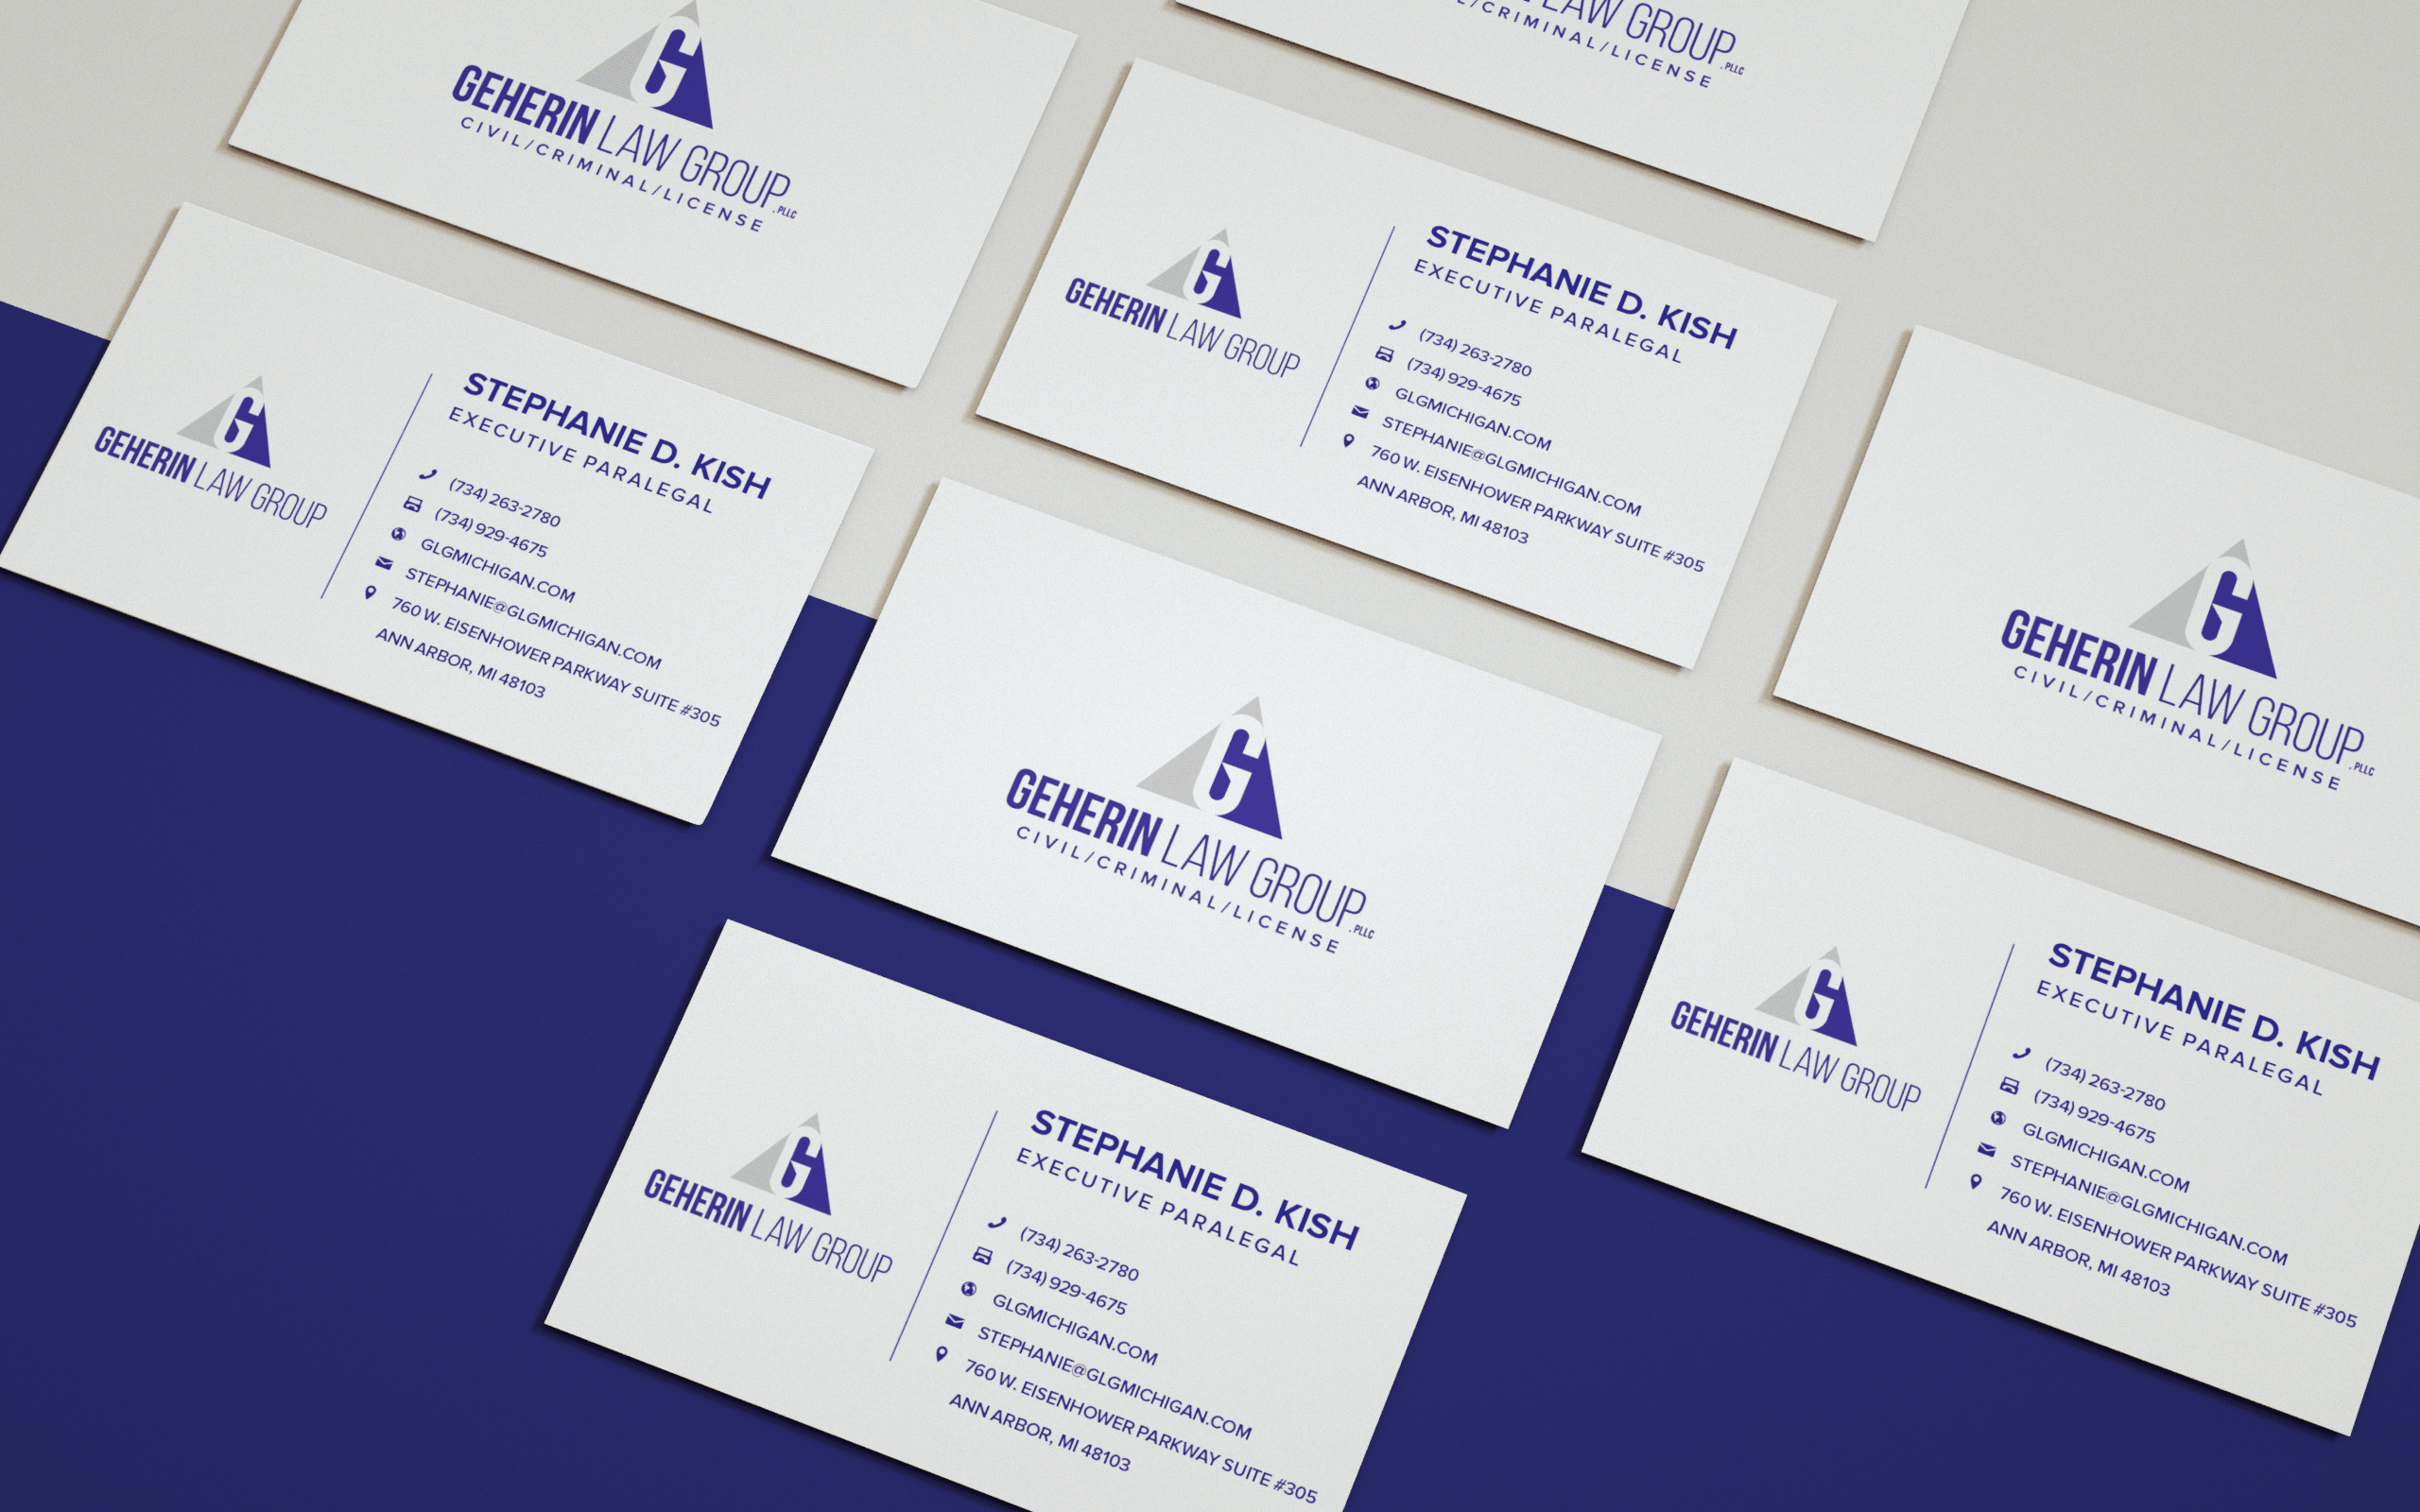 GEHERIN LAW GROUP IDENTITY BUSINESS CARD